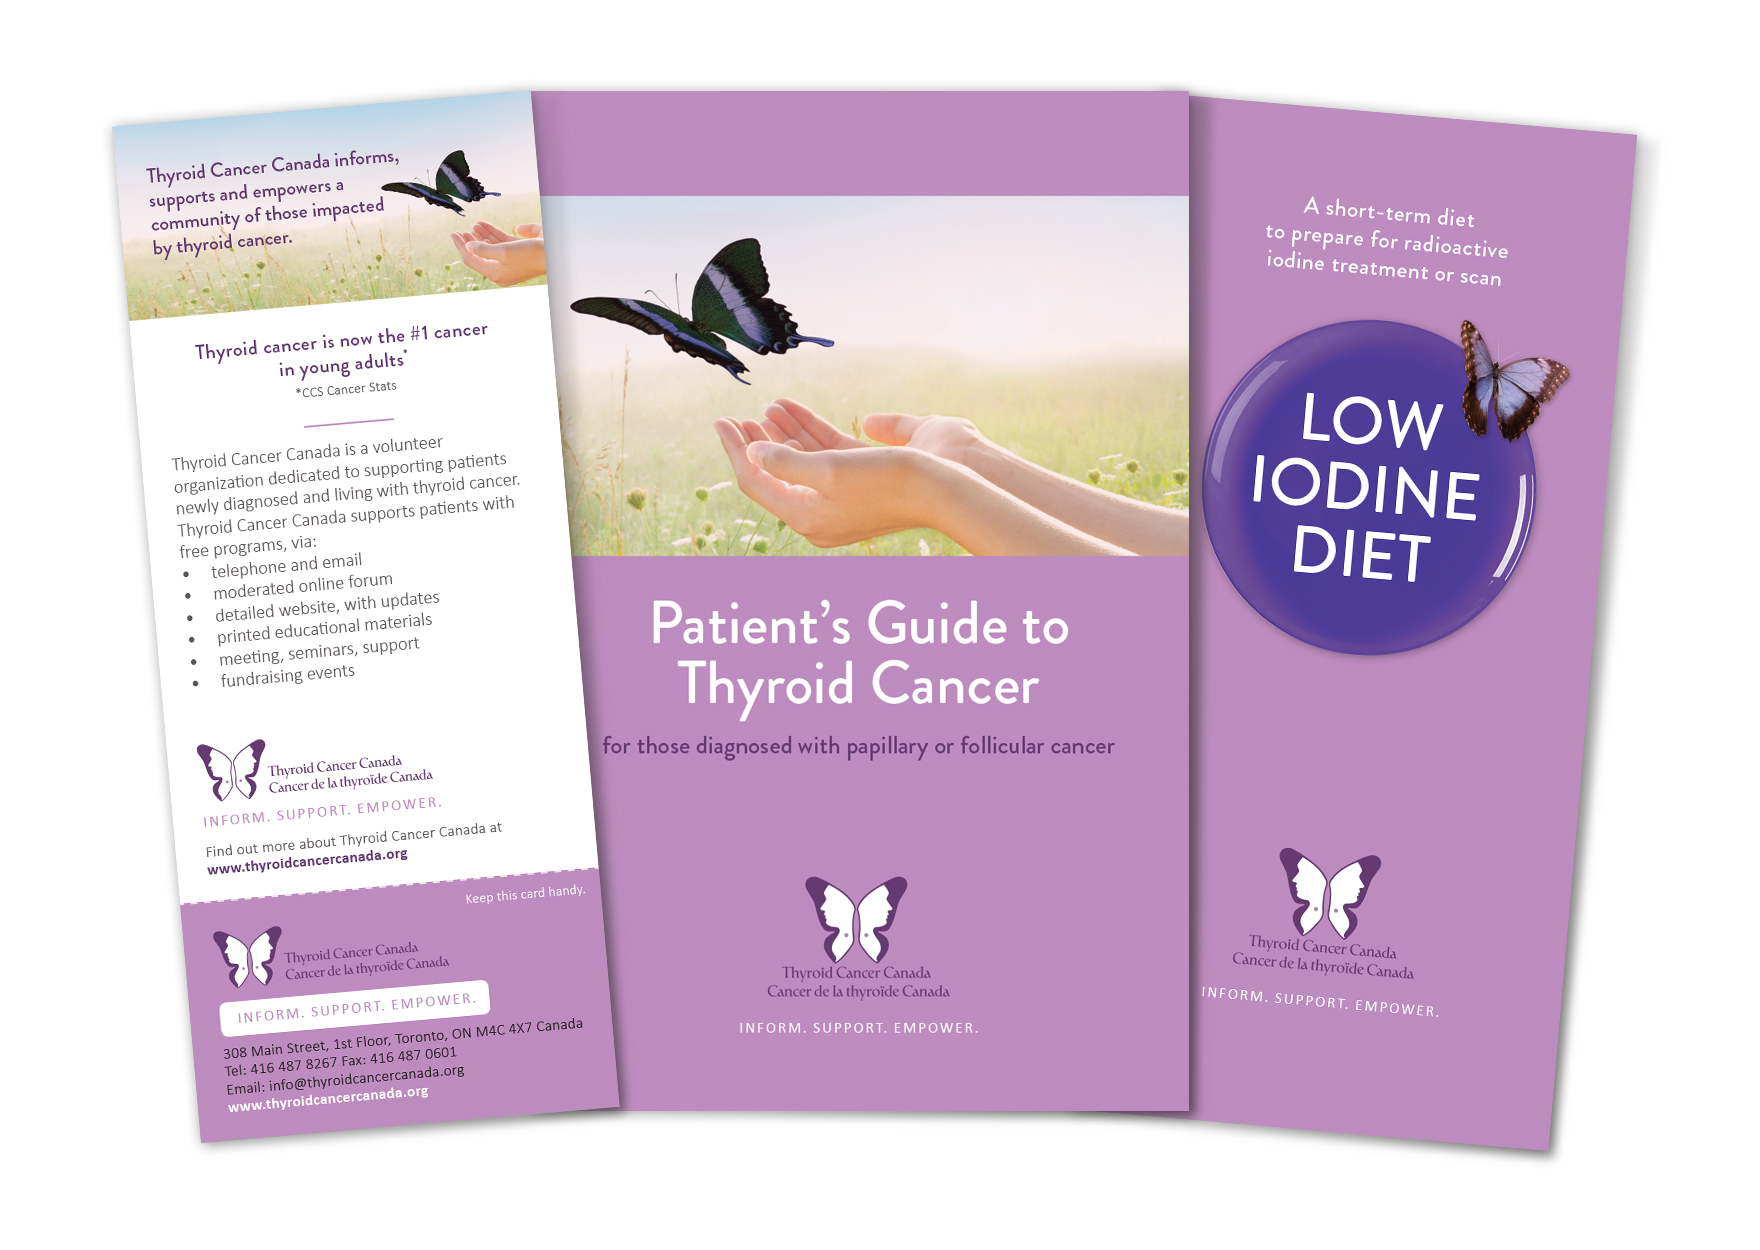 From left to right: Information Card, 32-page Patient's Guide to Thyroid Cancer and 20-page Low Iodine Diet Booklet.